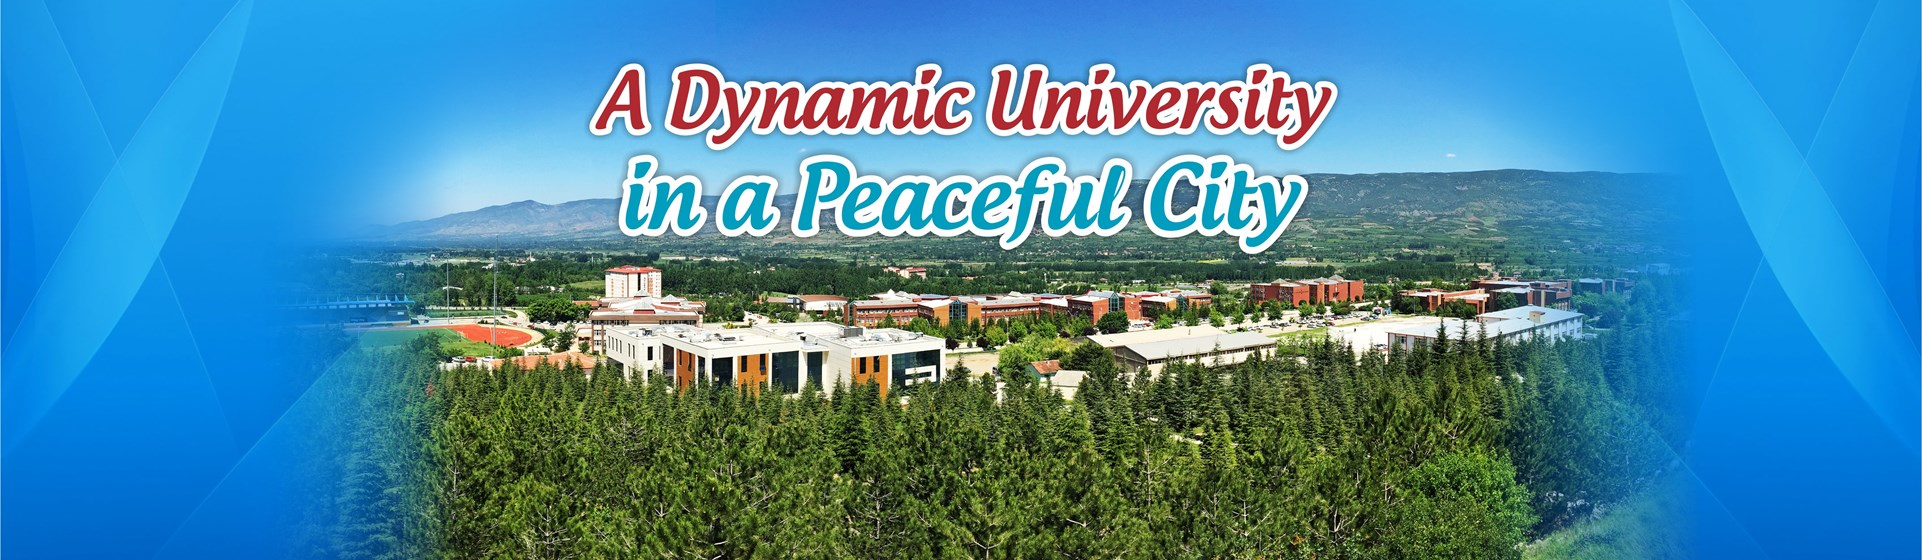 A Dynamic University in a Peaceful City